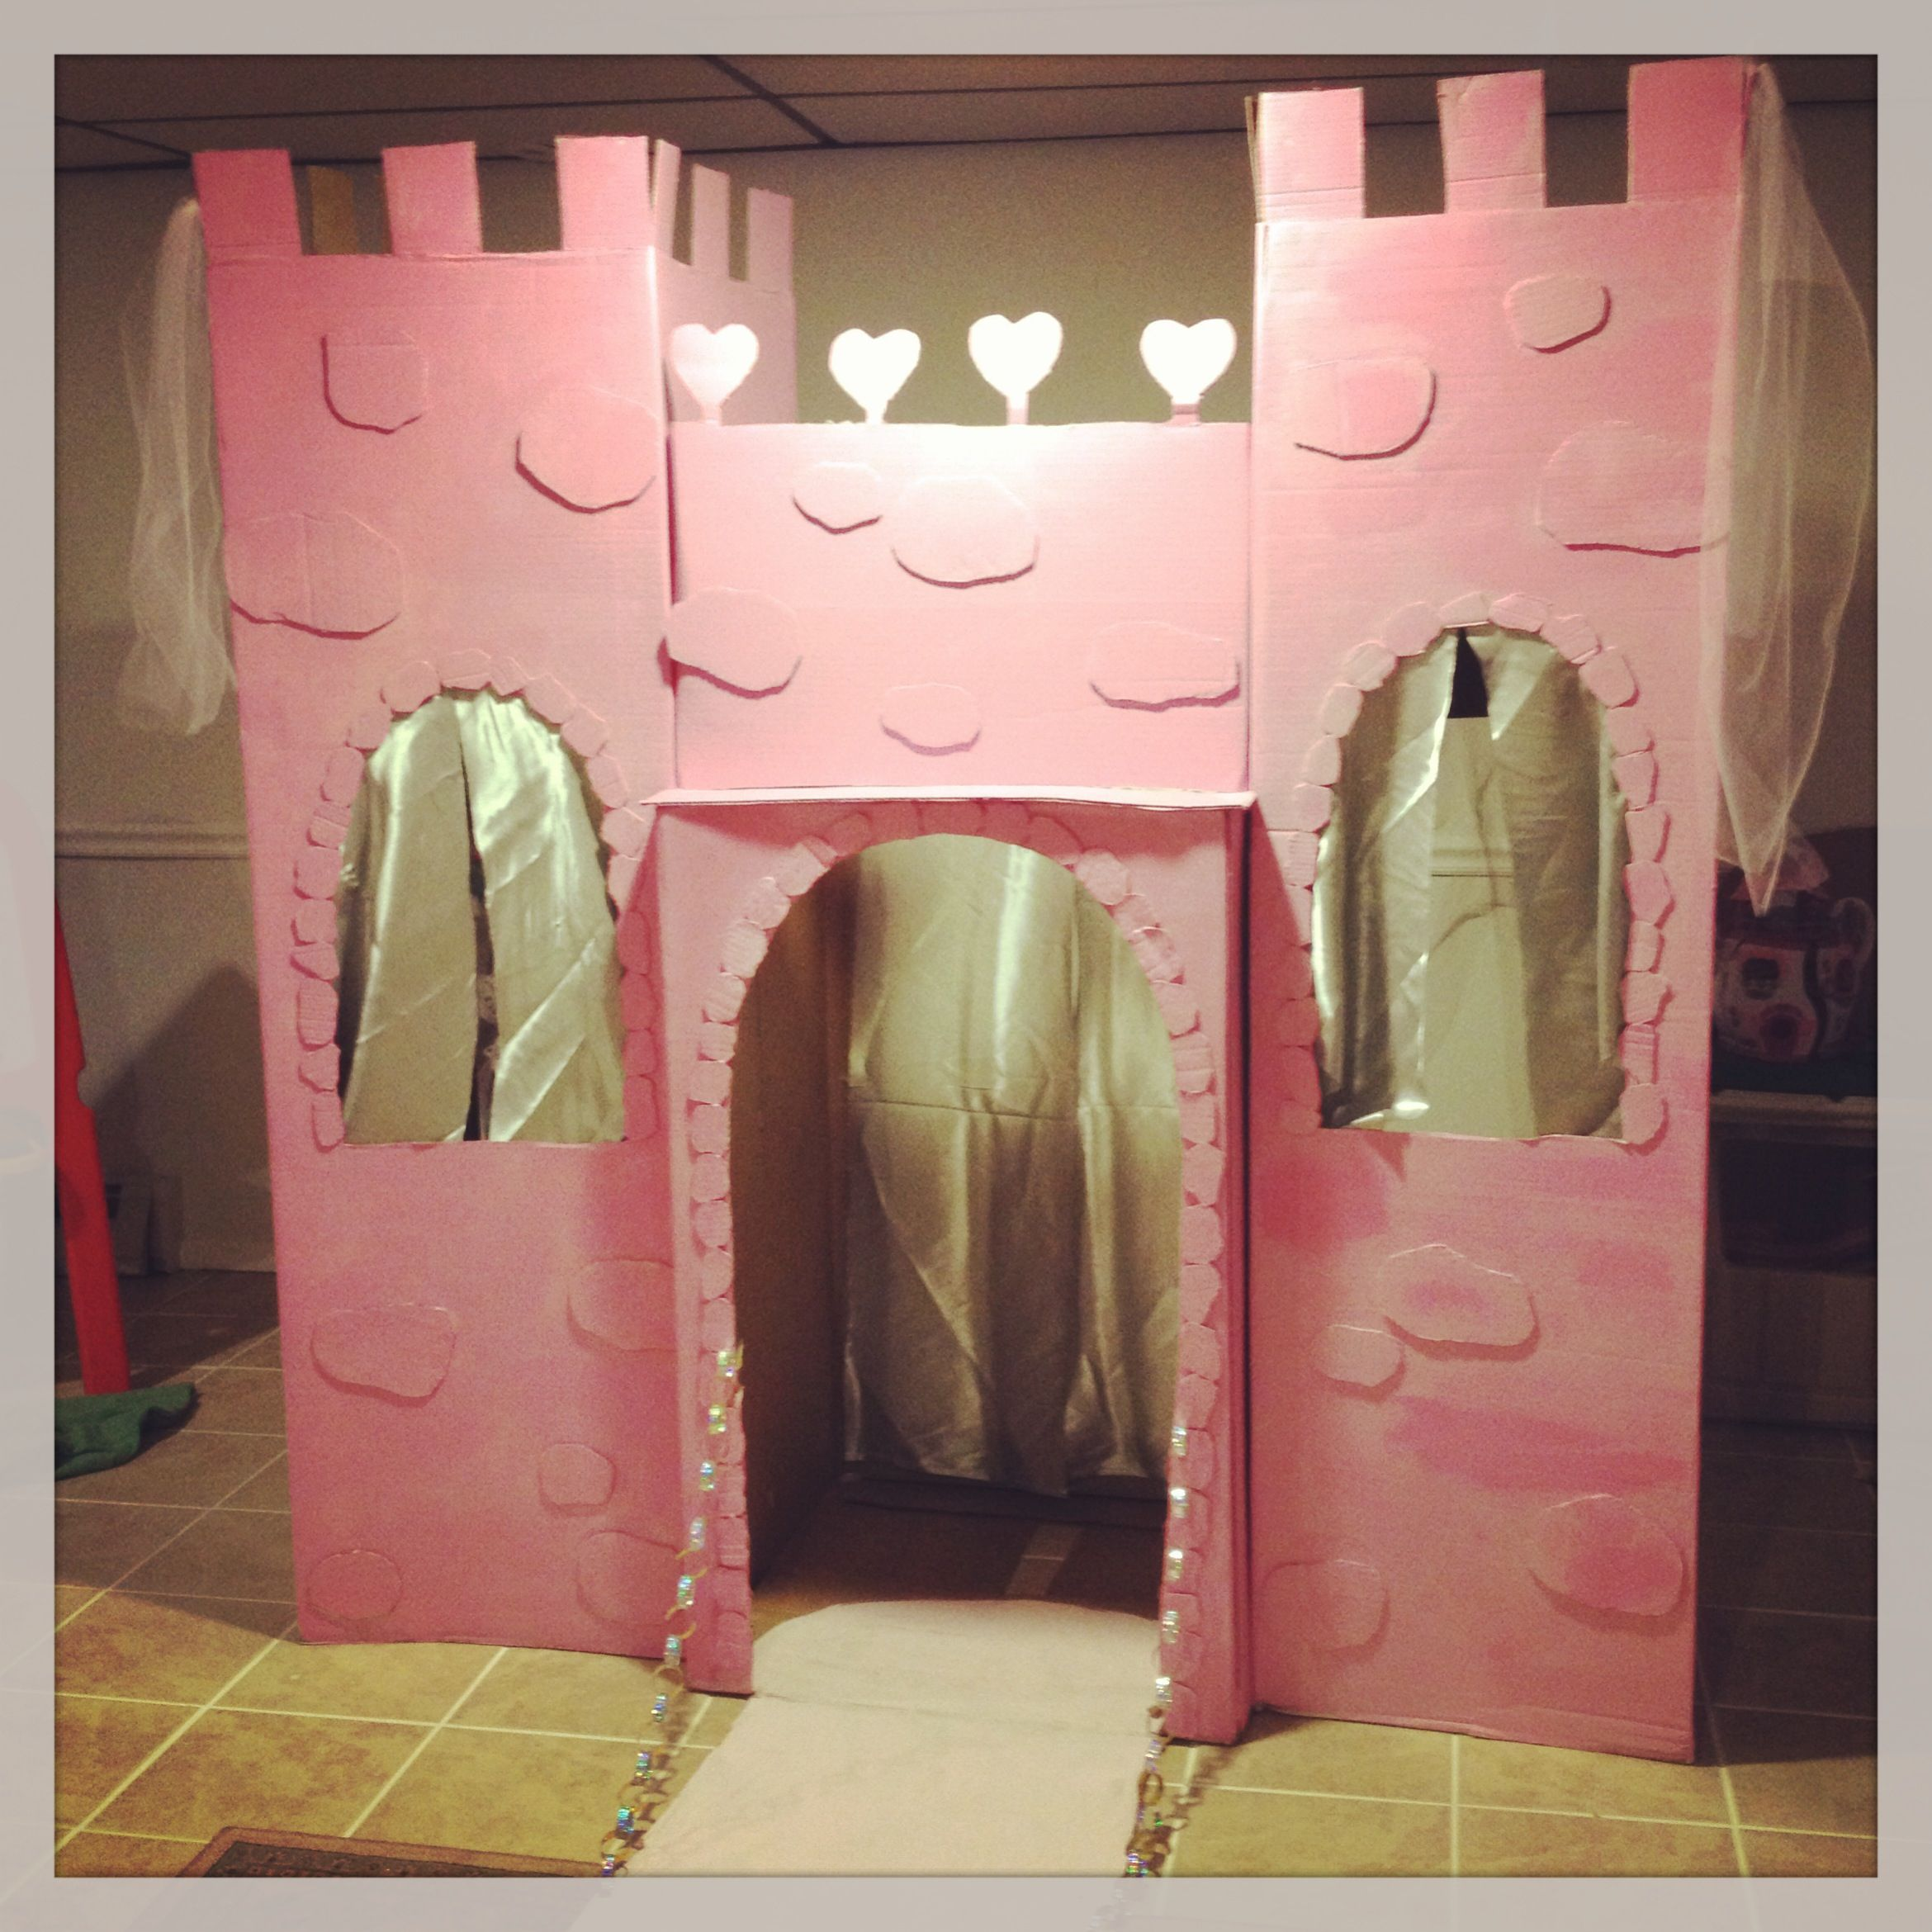 diy cardboard castle that lasts for months perfect for parties and